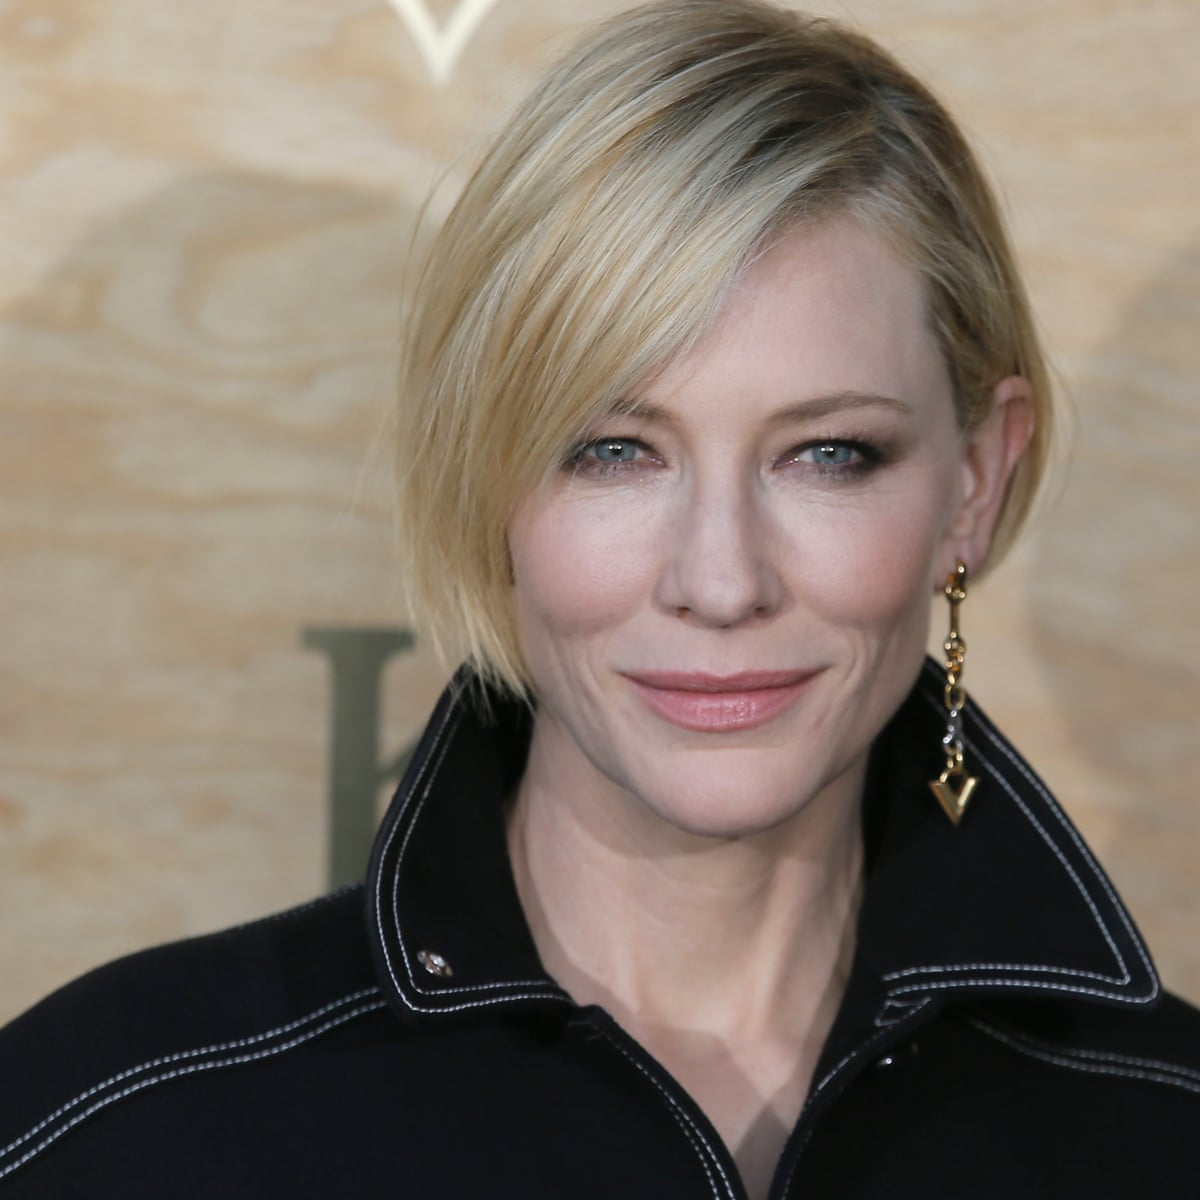 Cate Blanchett Artists Are Being Silenced Film The Guardian